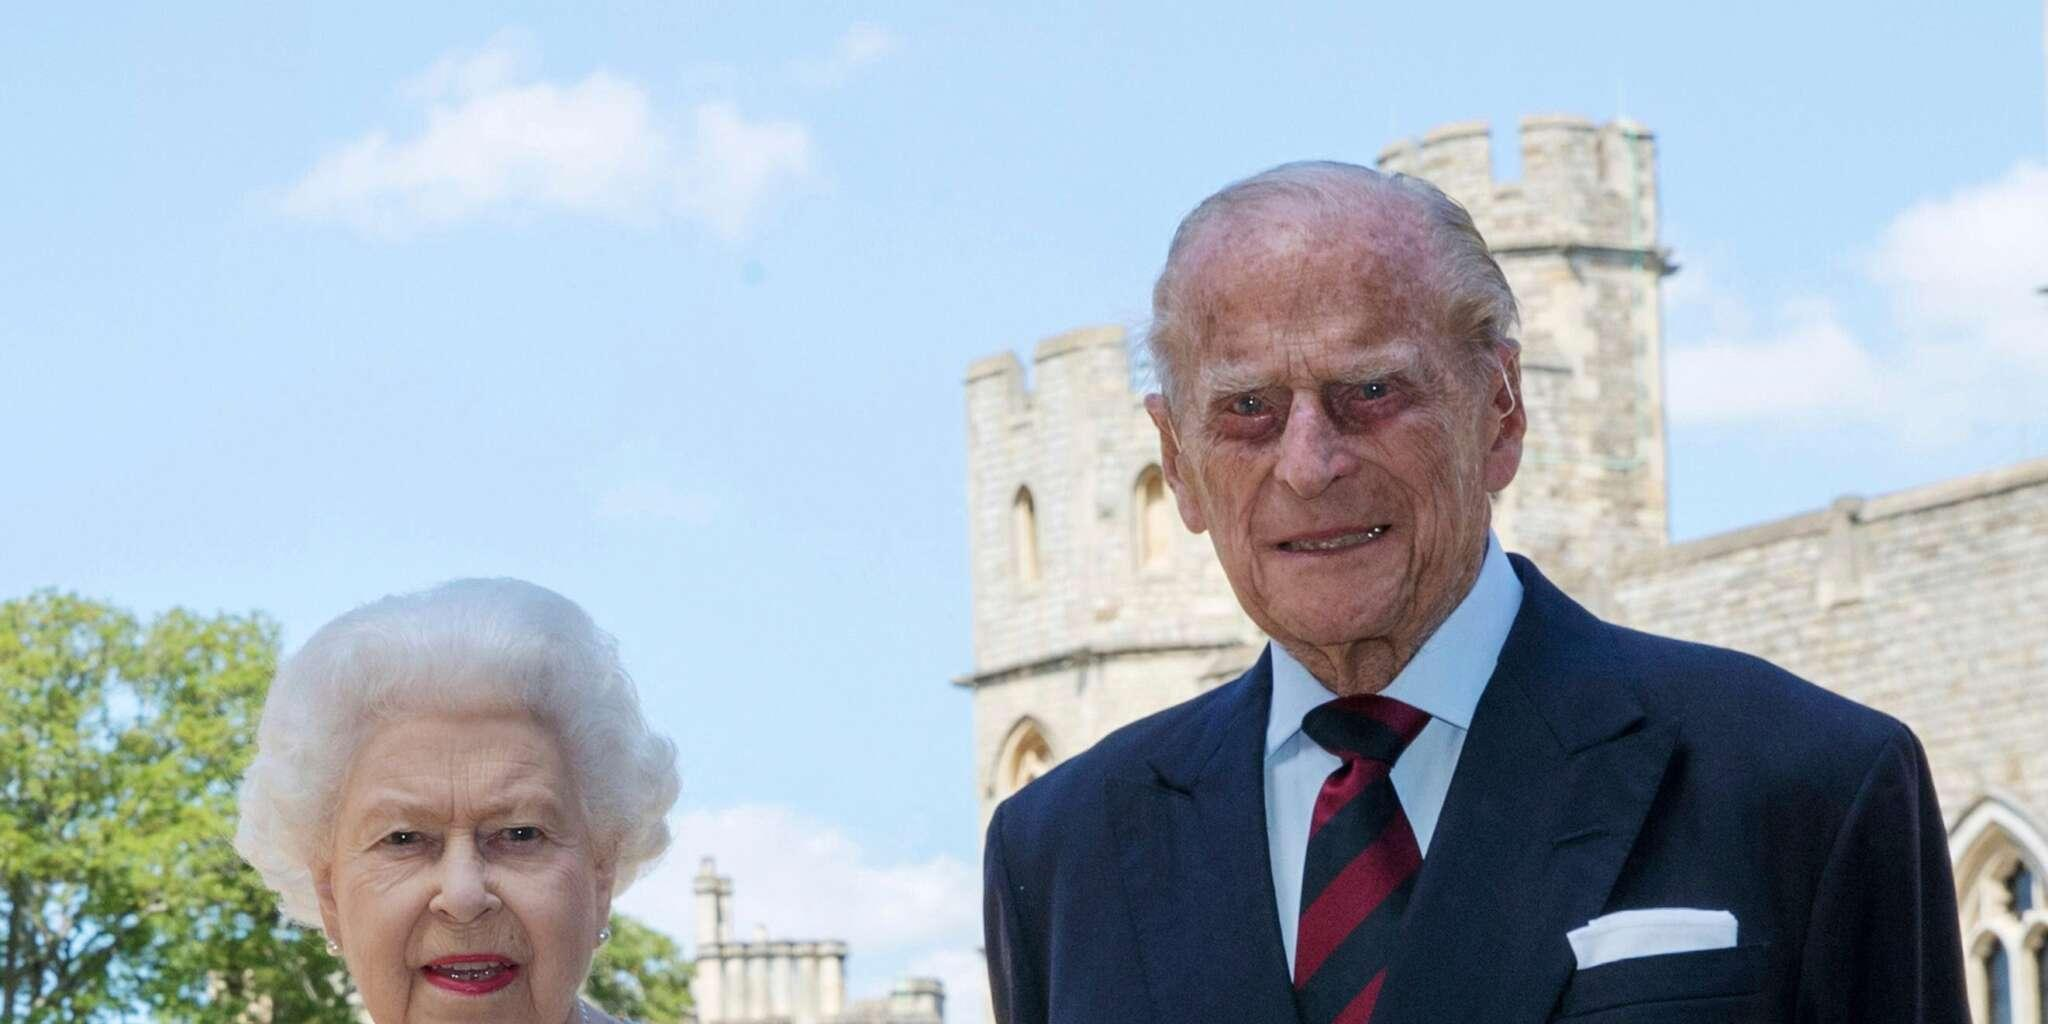 Prince Philip Gets Admitted To The Hospital After 'Feeling Unwell'